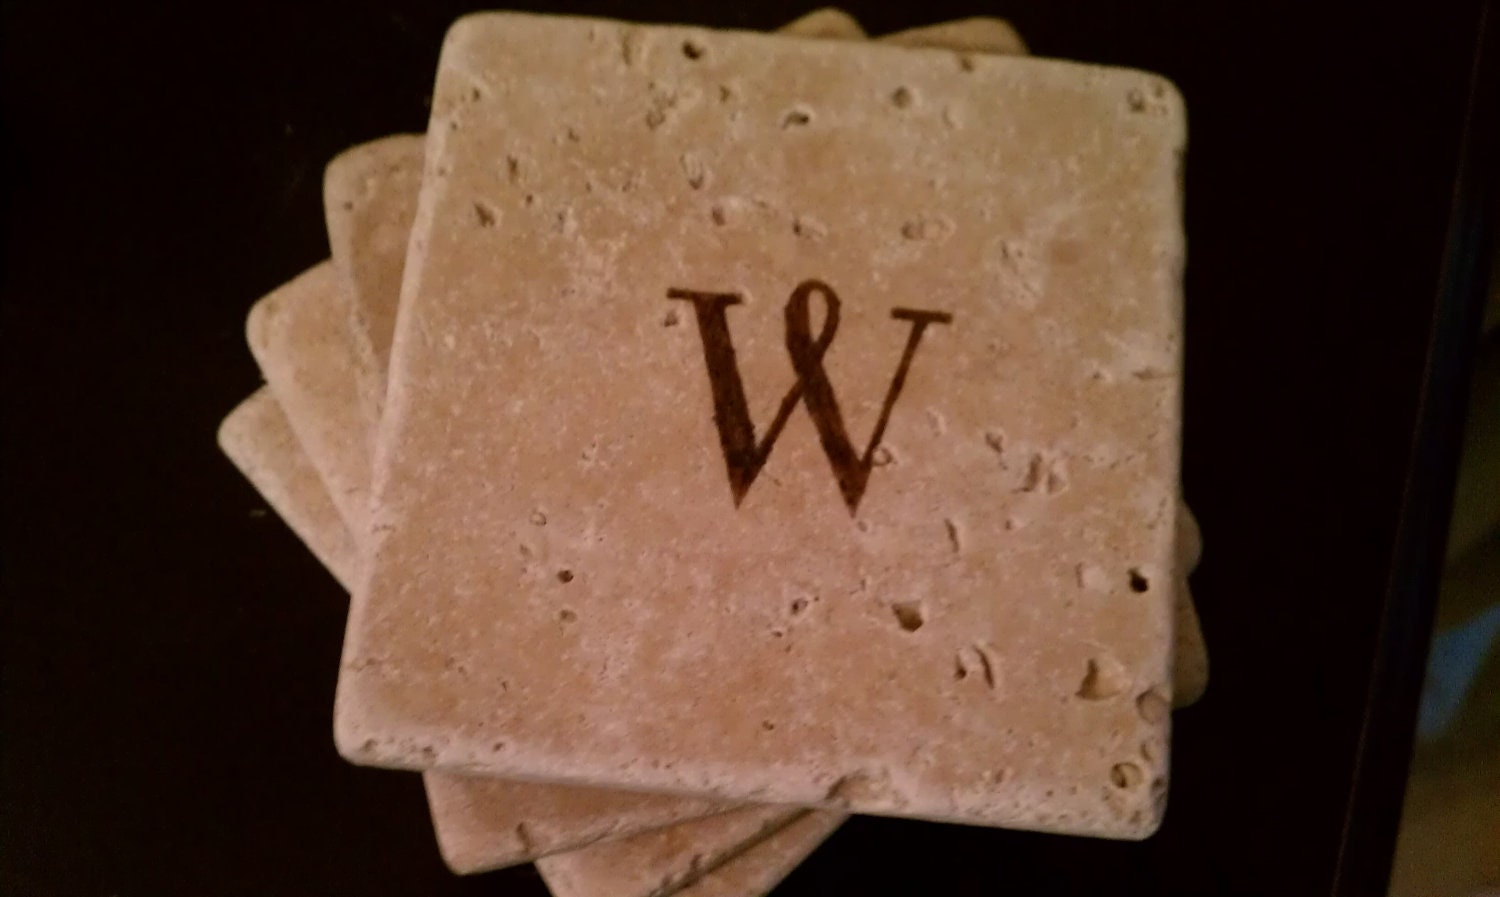 Custom coaster drink coasters 4 x 4 tumbled stone for Best coasters for sweaty drinks